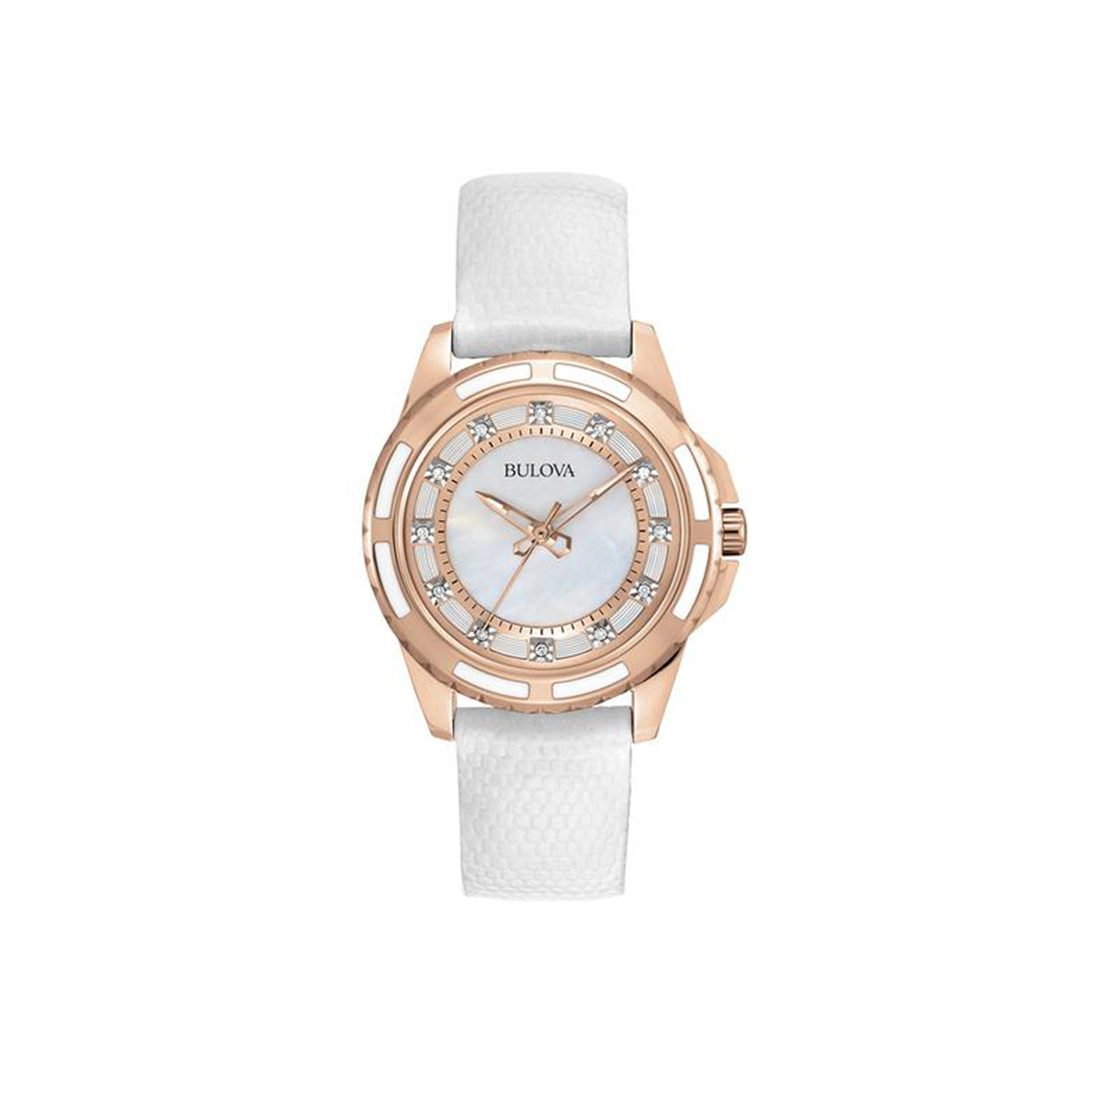 Women's Bulova watch with rose gold ion-plated finish and stainless steel